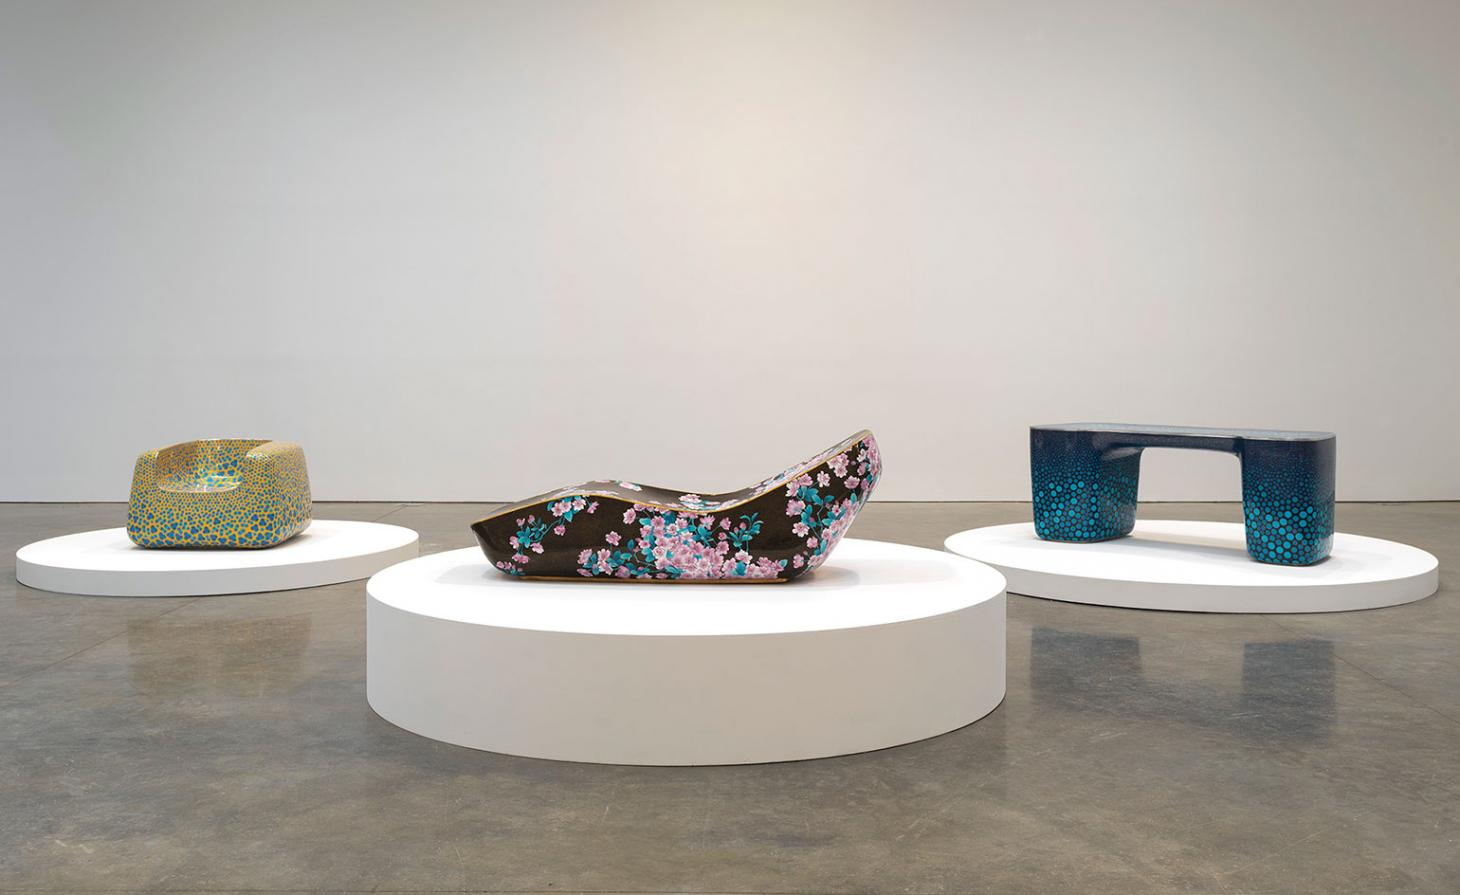 Cloisonne furniture in Marc Newson solo show at Gagosian